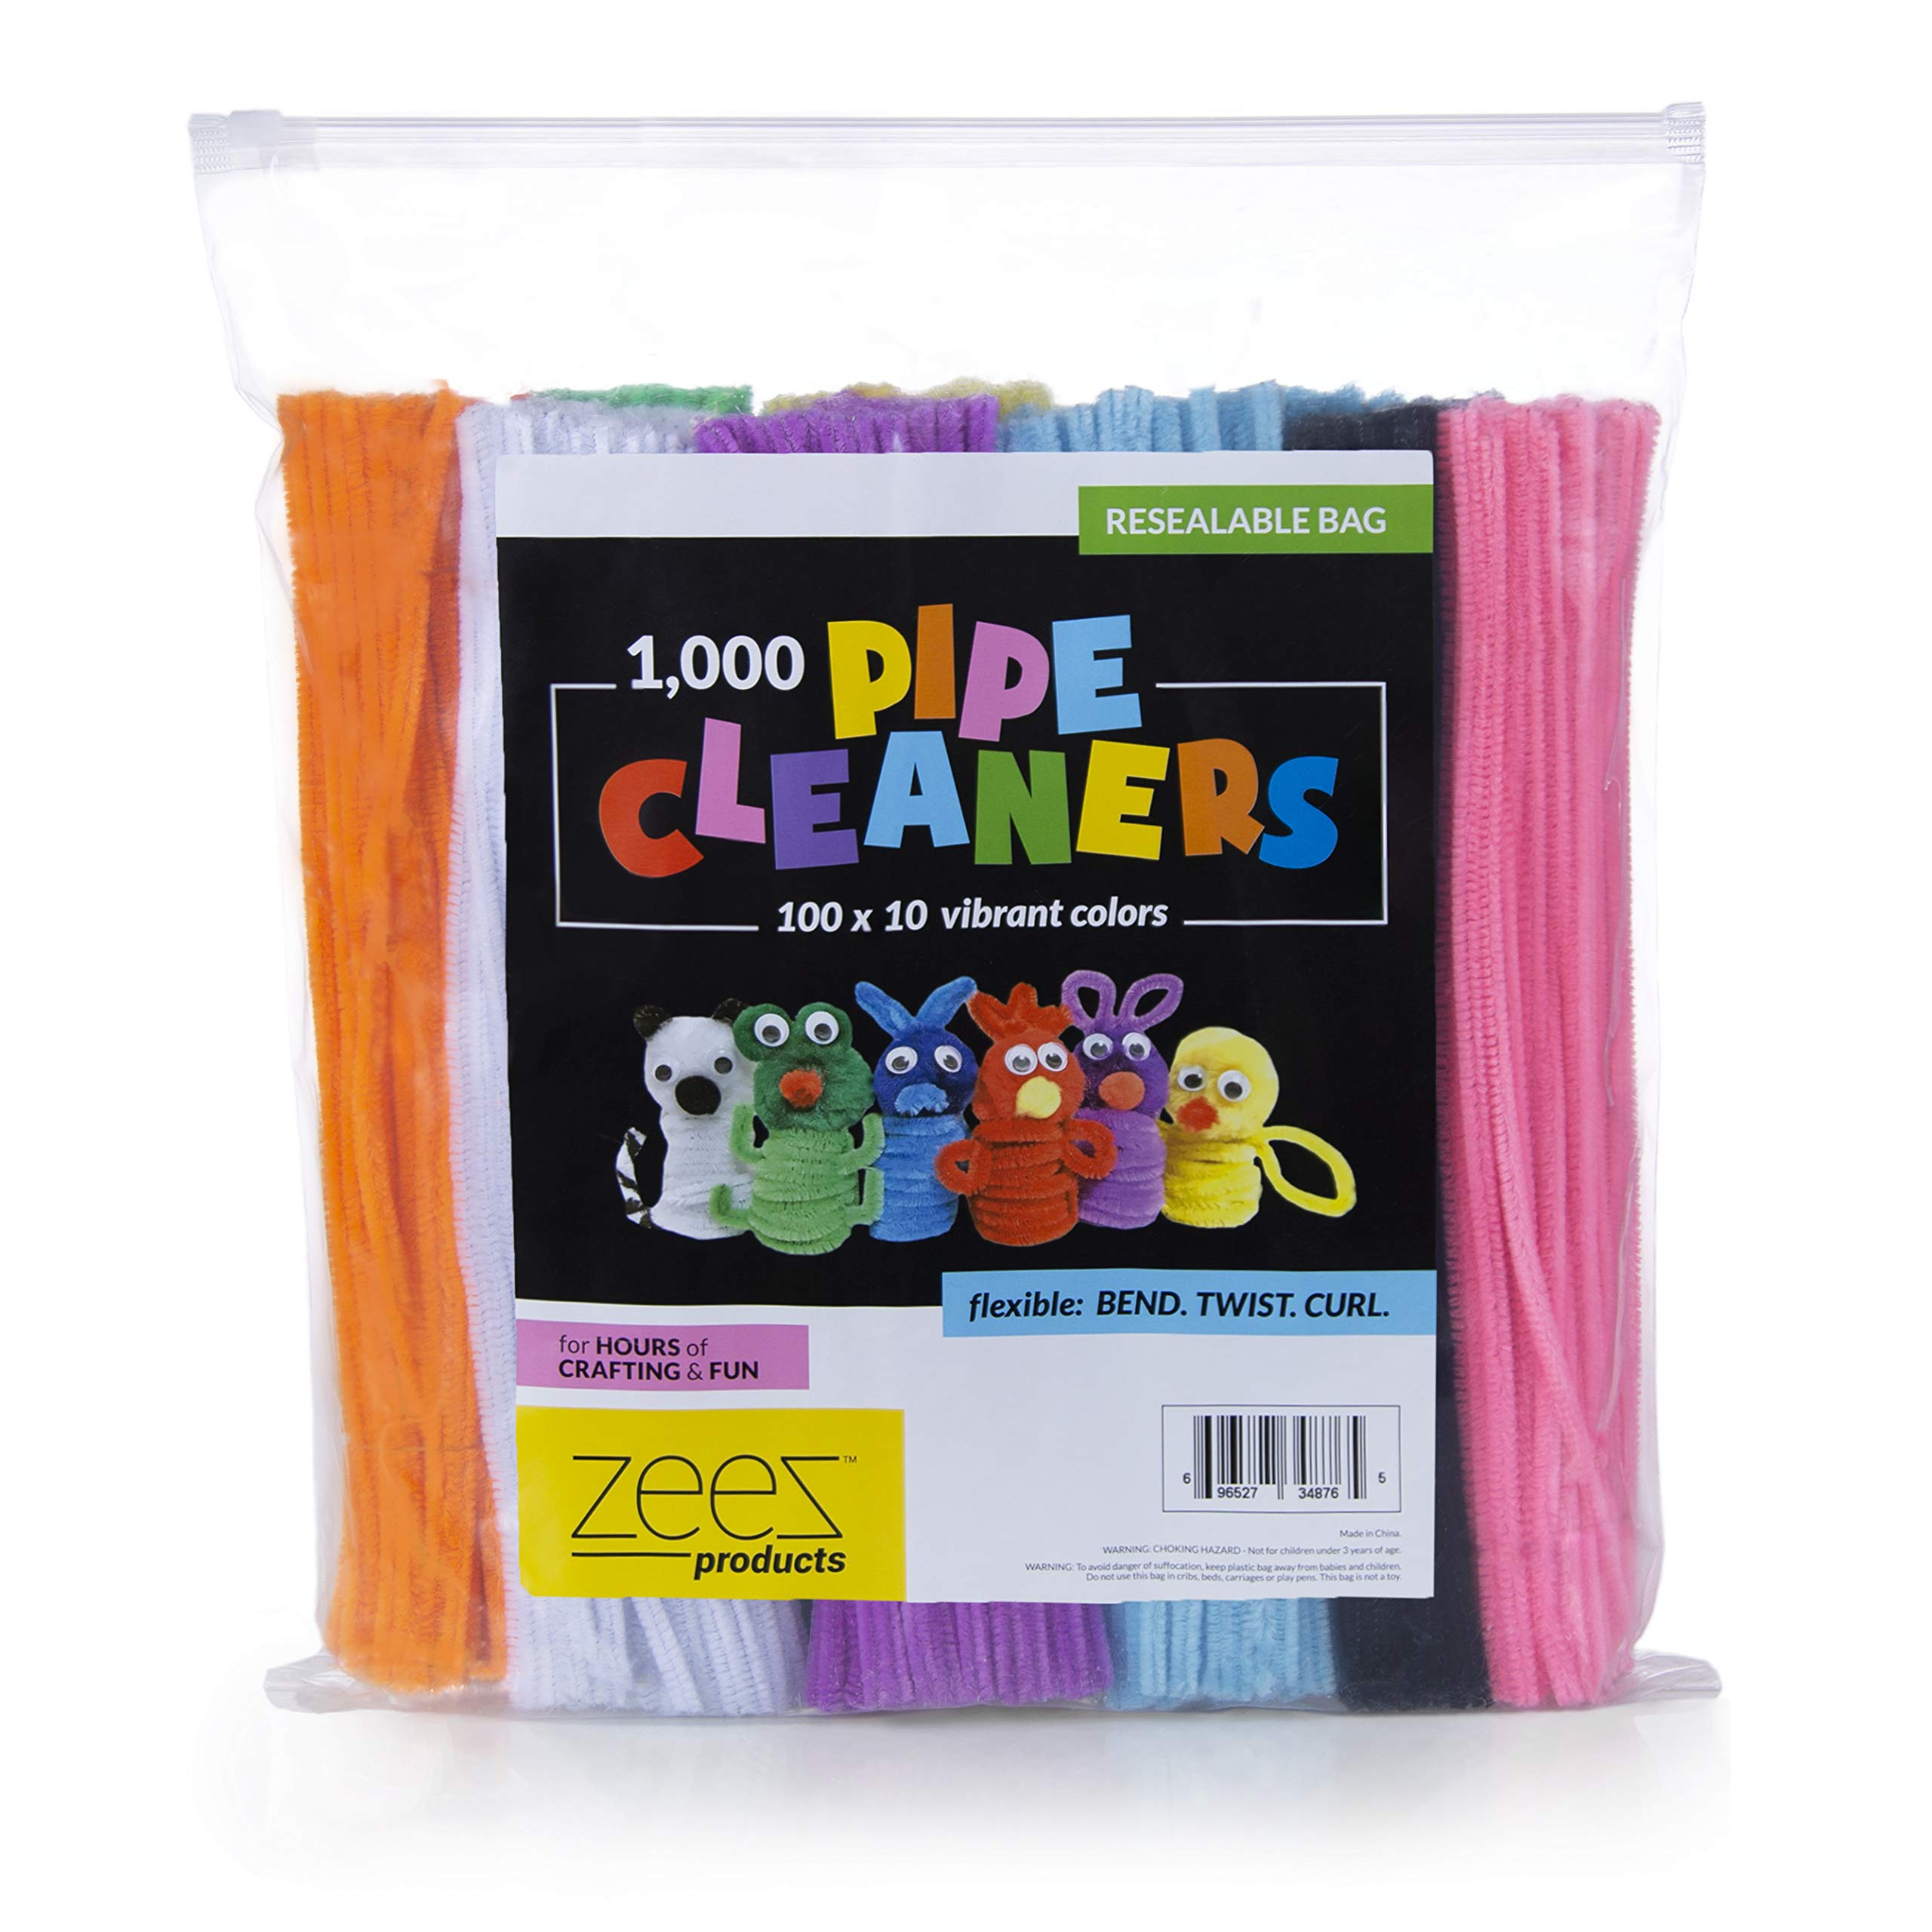 Zees 1,000 Pipe Cleaners in 10 Assorted Colors, Value Pack of Chenille Stems for DIY Arts and Craft Projects and Decorations - 6mm x 12 Inches by zees products (Image #3)